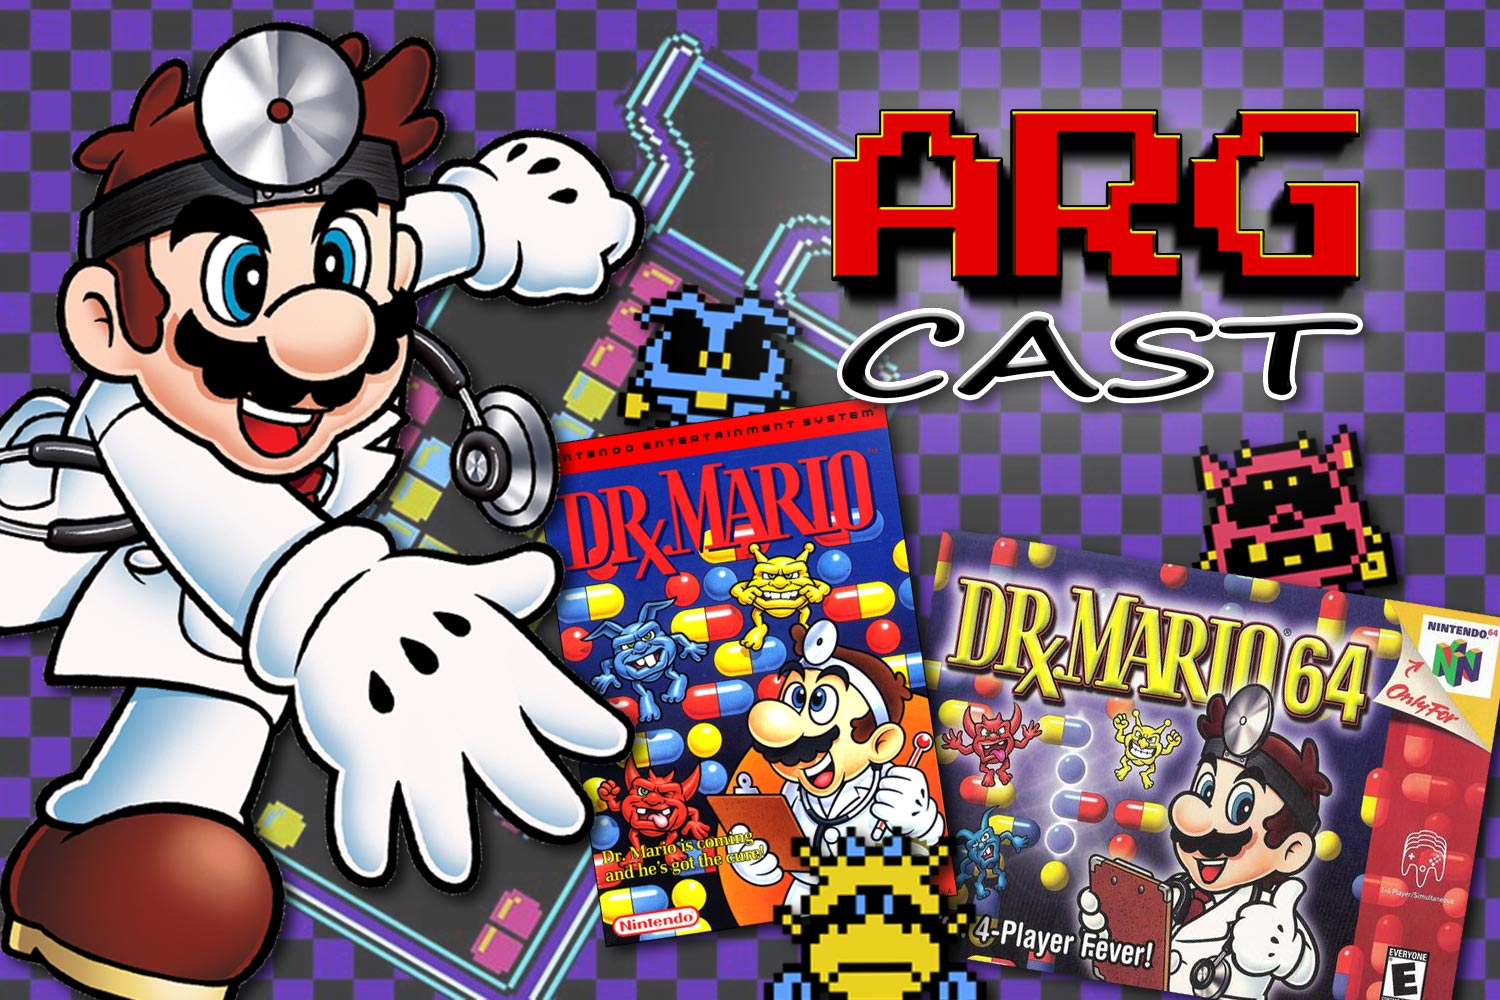 ARGcast #168: Making an Appointment with the Dr. Mario Series